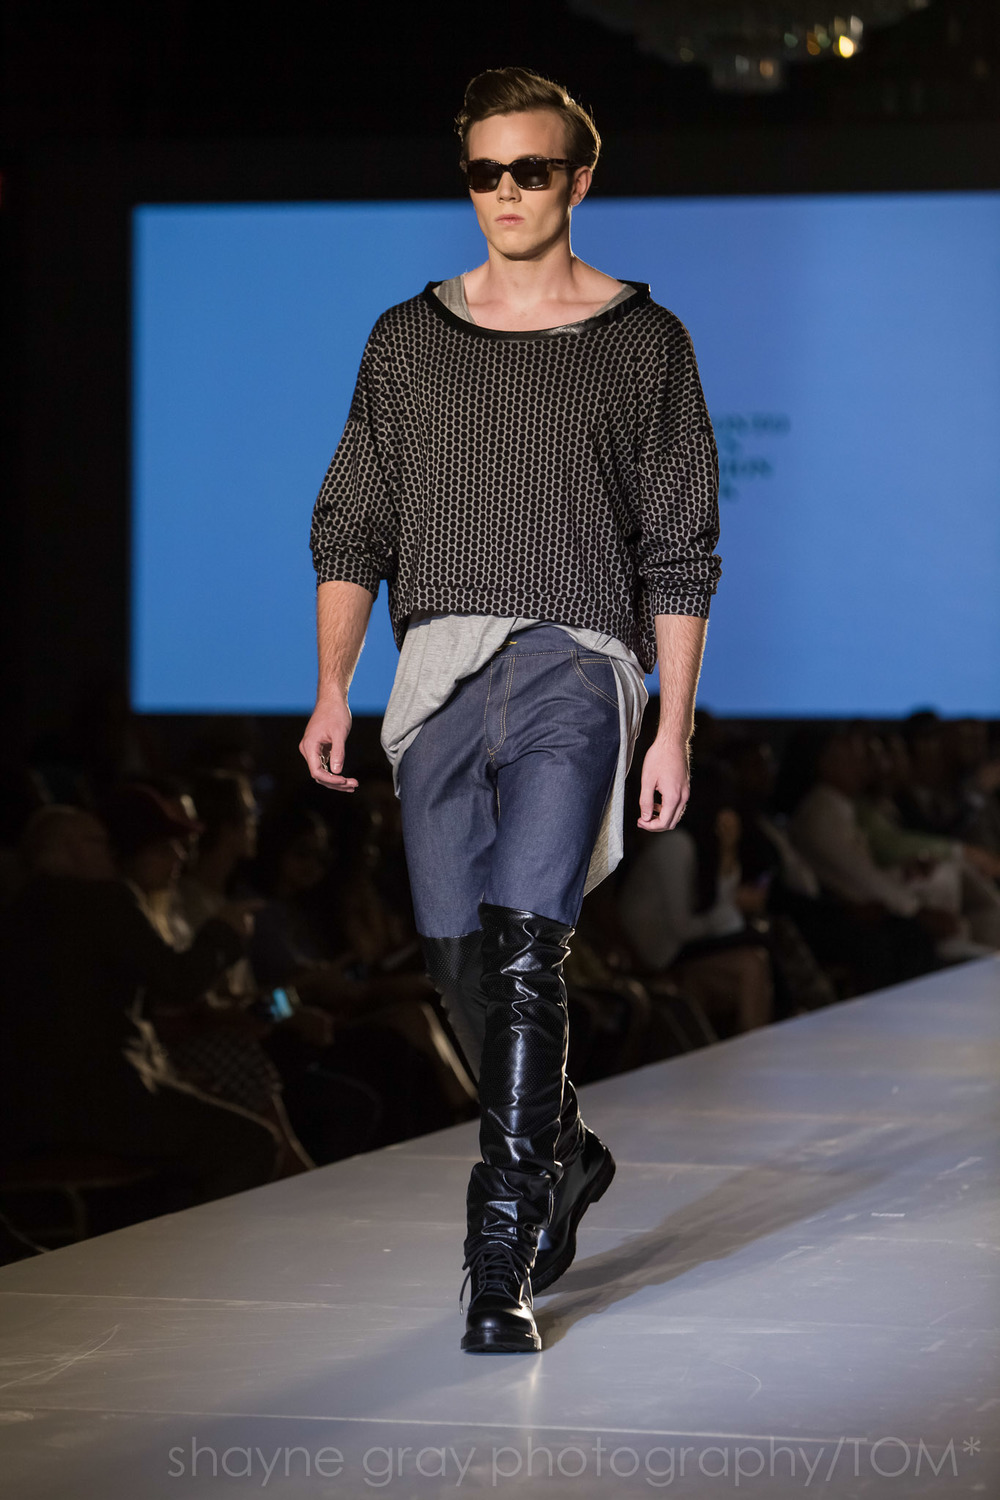 Shayne-Gray-Toronto-men's-fashion_week-TOM-worth-by-david-c-wigley-6291.jpg